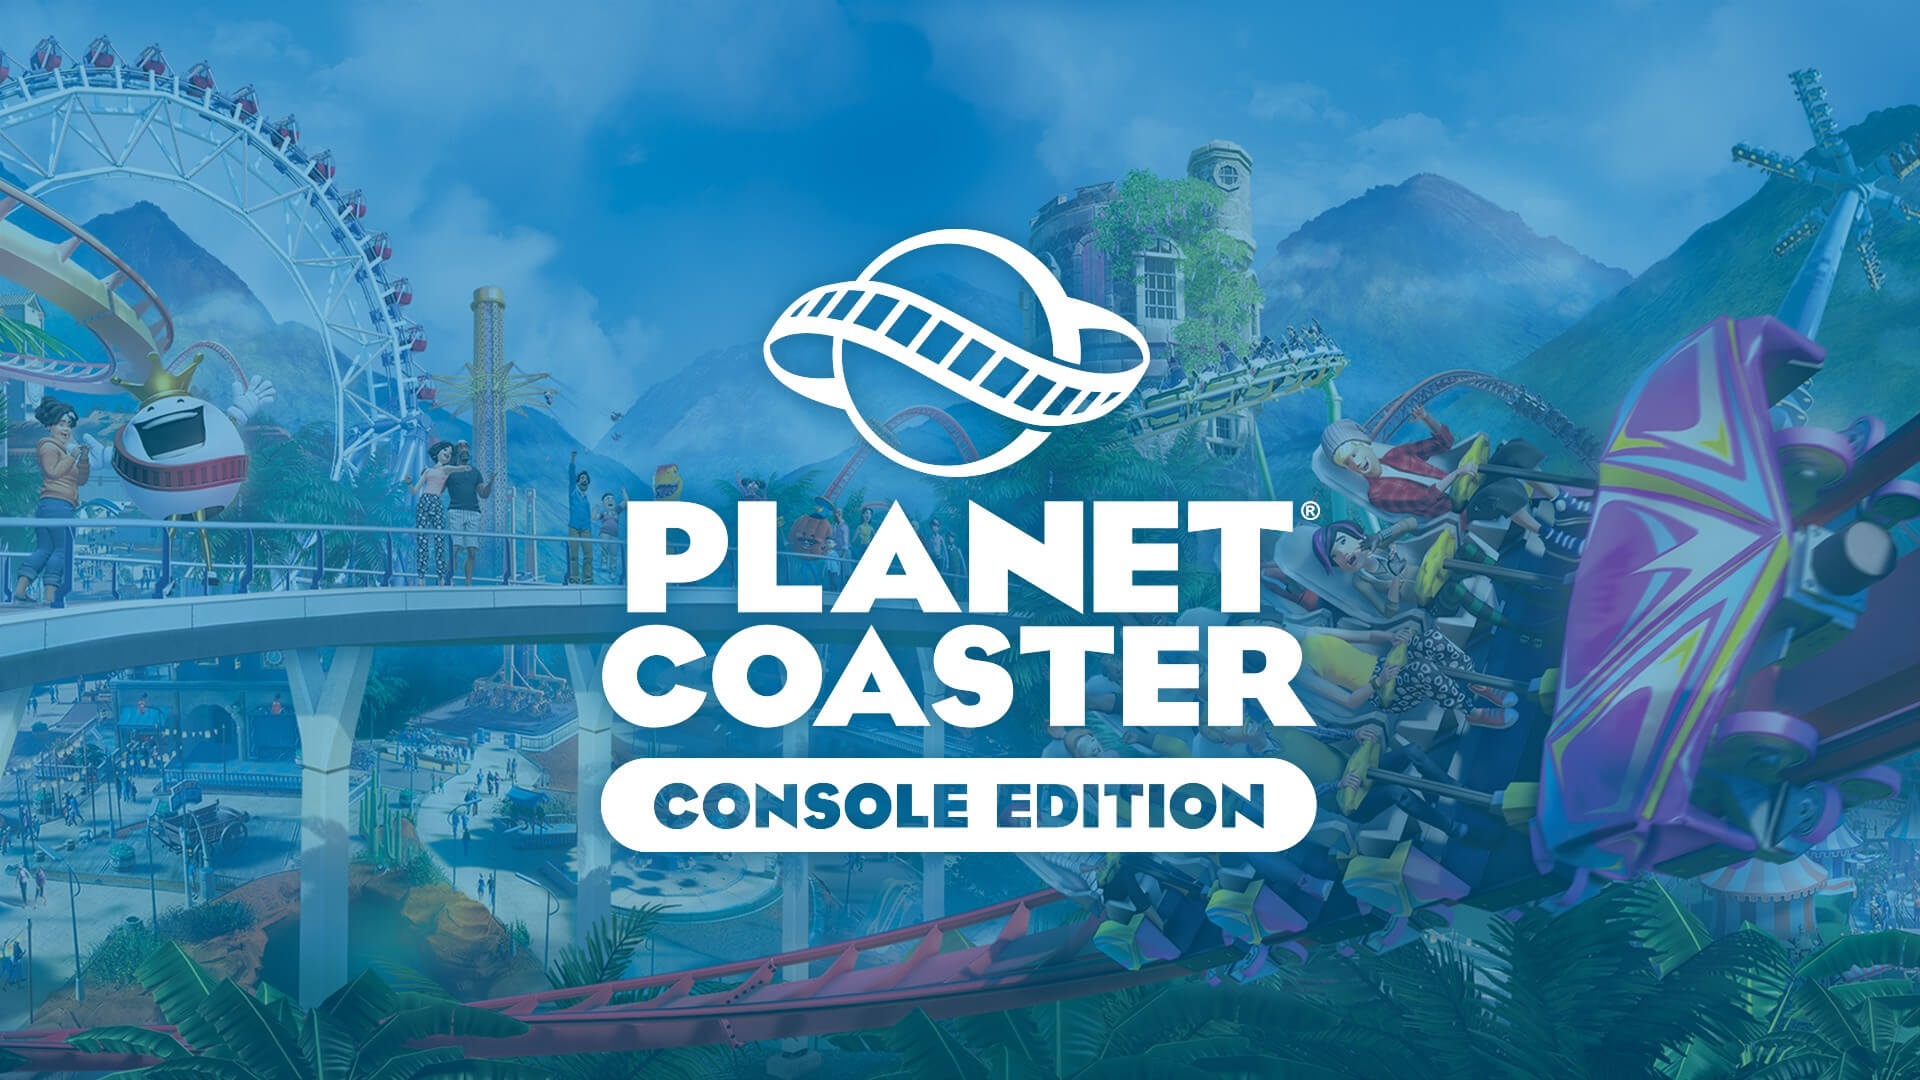 planet-coaster-console-edition-xboxone-capa